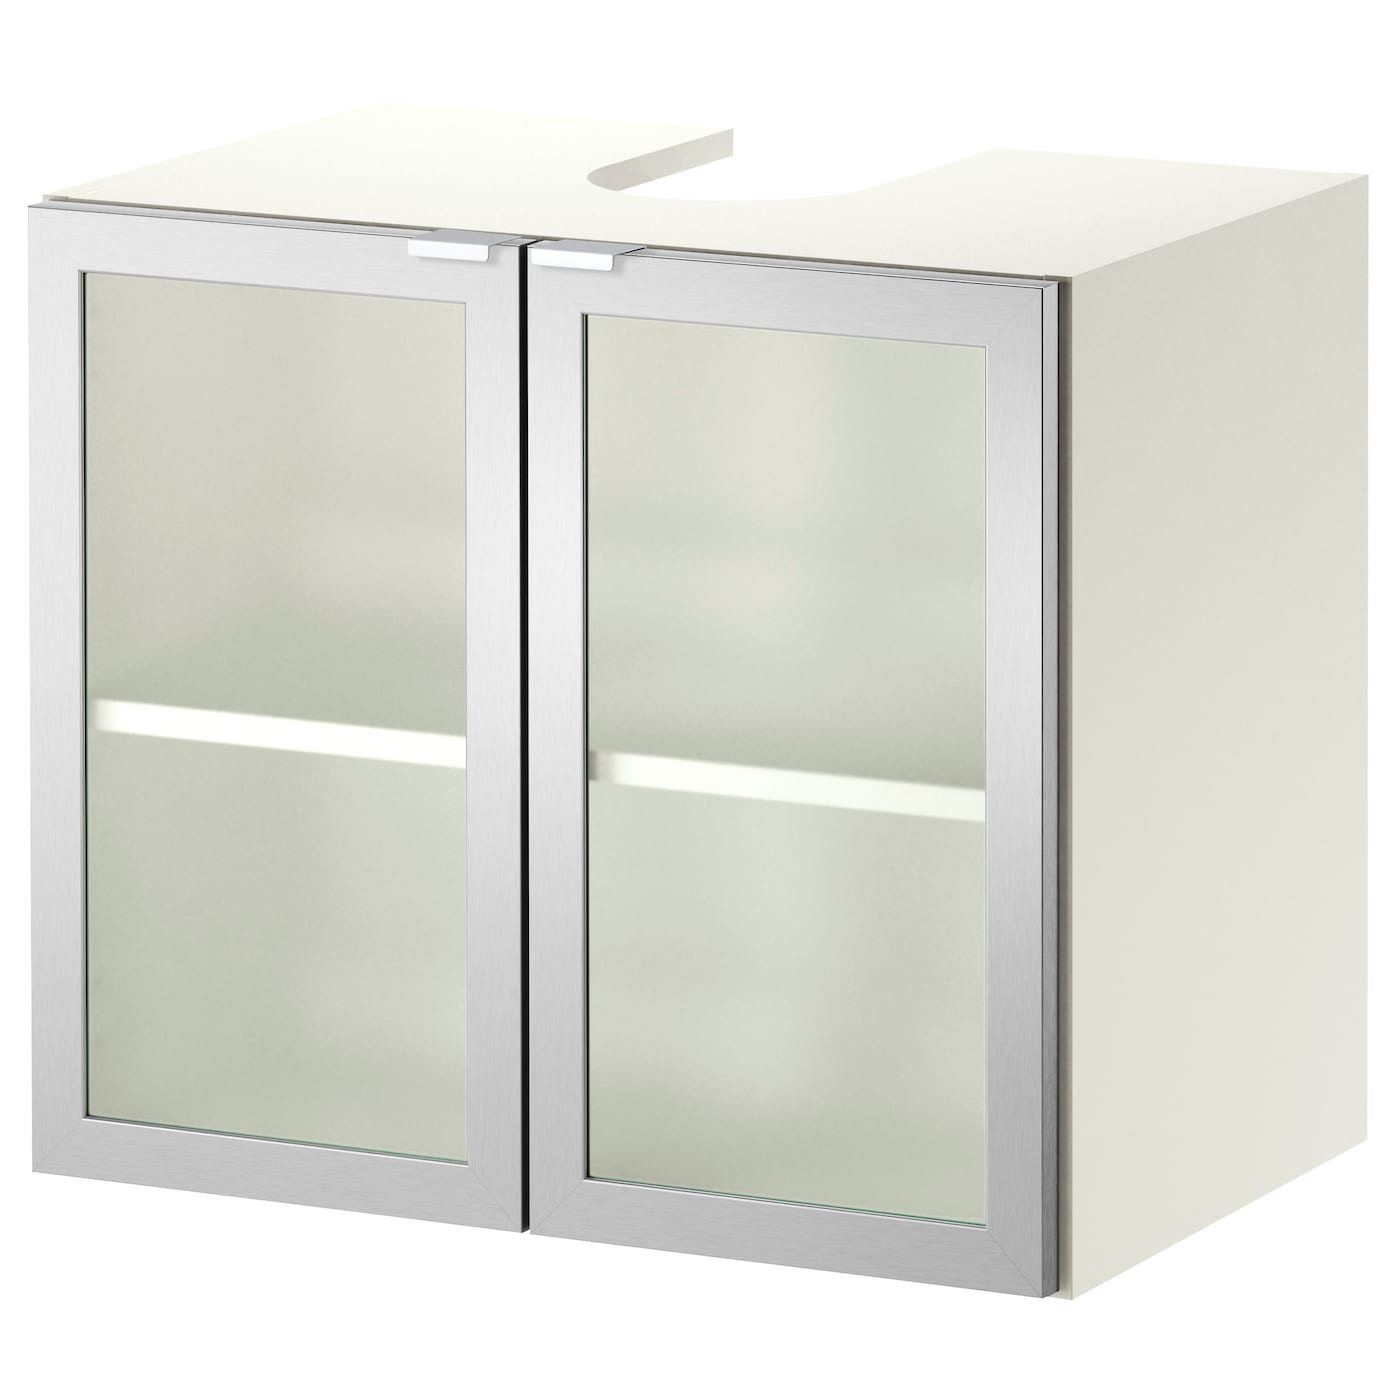 Ikea Bathroom Cabinet Doors Home Decoration Interior House Designer